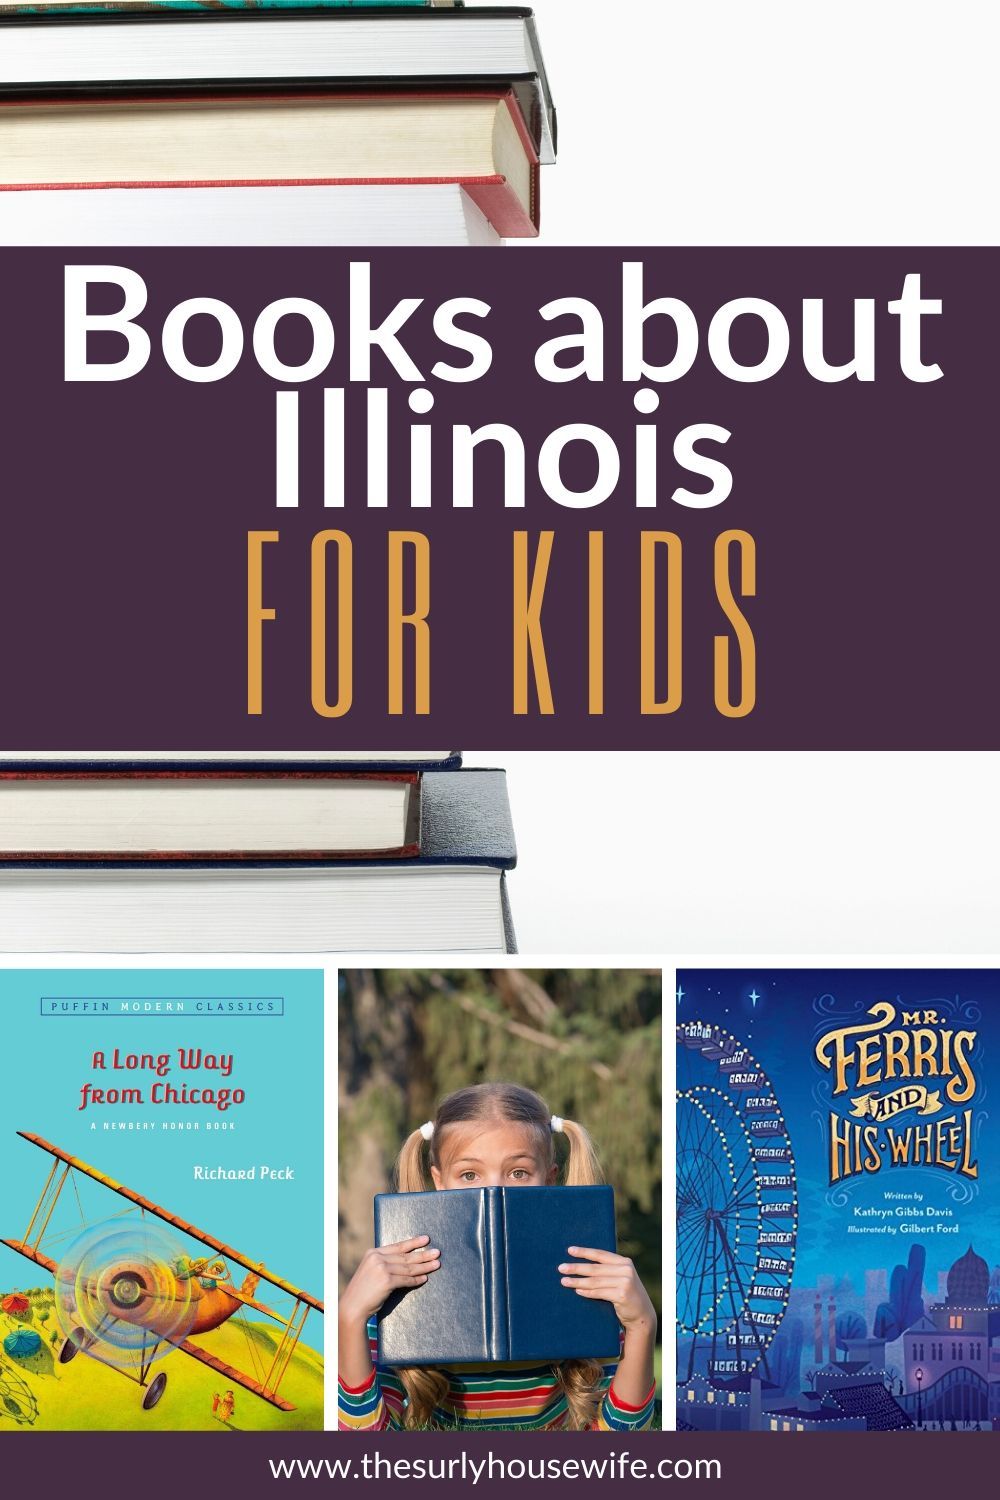 Searching for children's books about Illinois? This book list includes picture books and chapter books about the state of Illinois and as well as picture and chapter books set in Chicago!